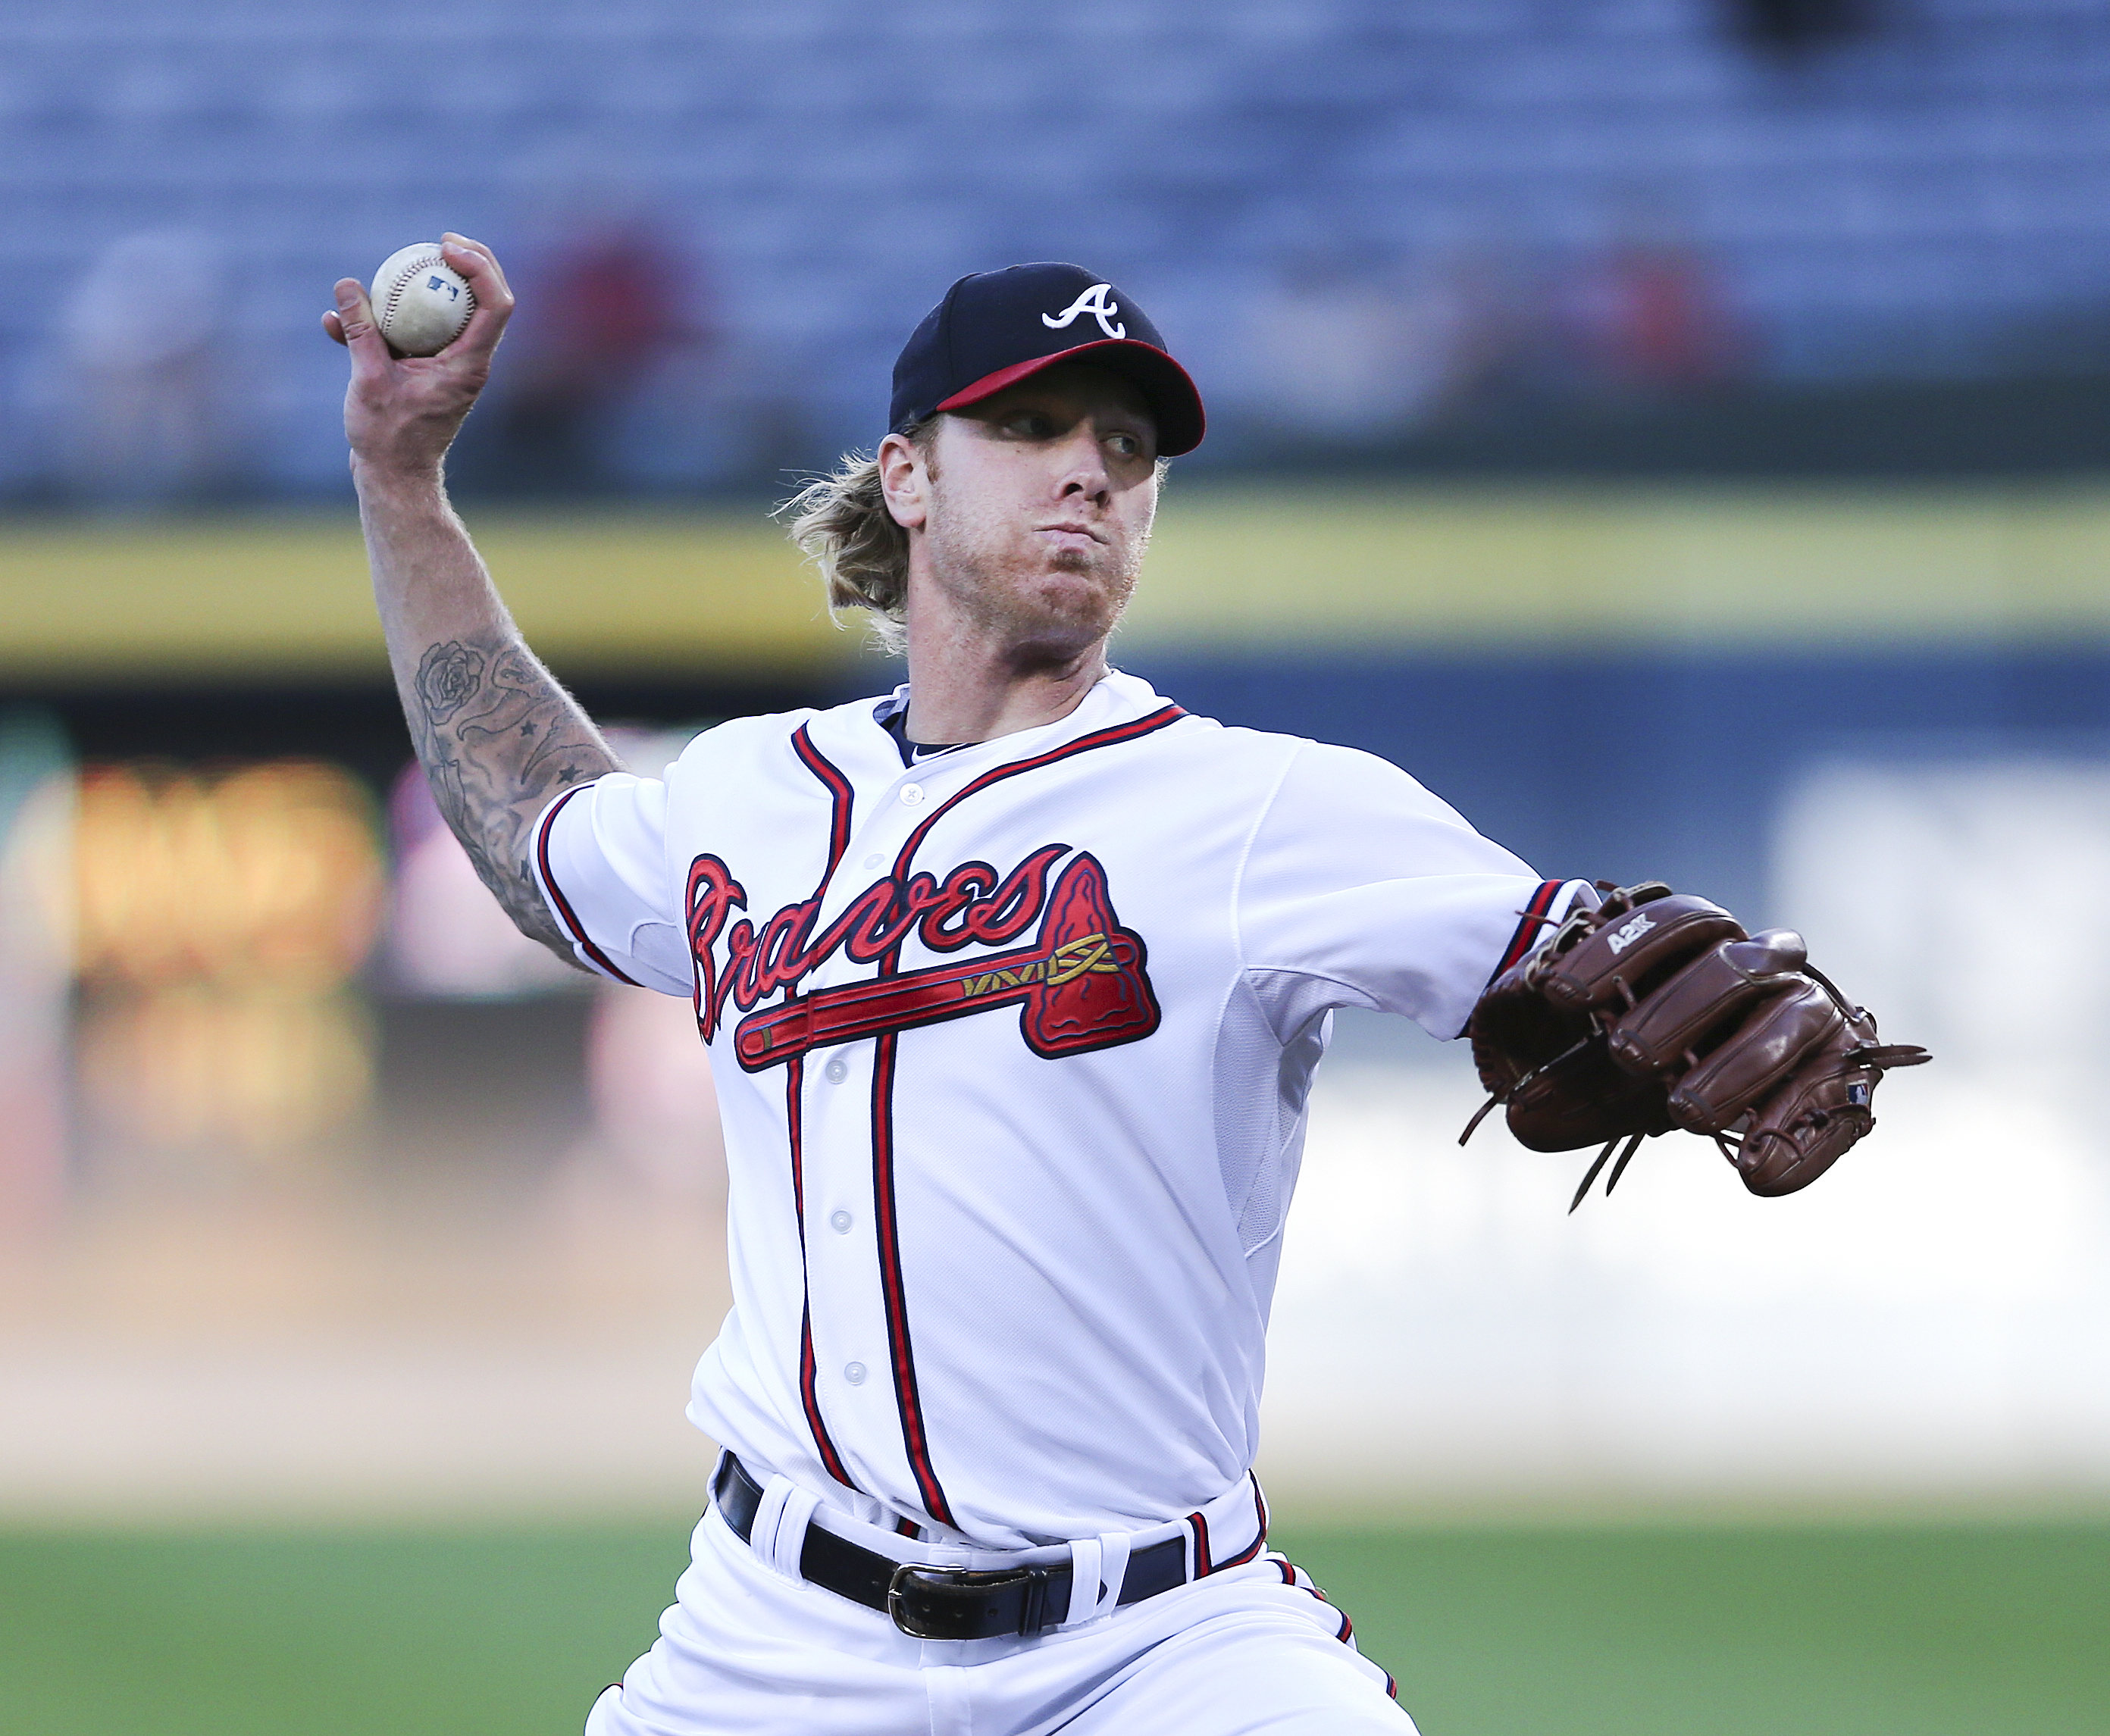 Atlanta Braves starting pitcher Mike Foltynewicz (48) works inn the first  a baseball game the Colorado Rockies Tuesday, Aug. 25, 2015, in Atlanta. Colorado won 5-1. (AP Photo/John Bazemore)